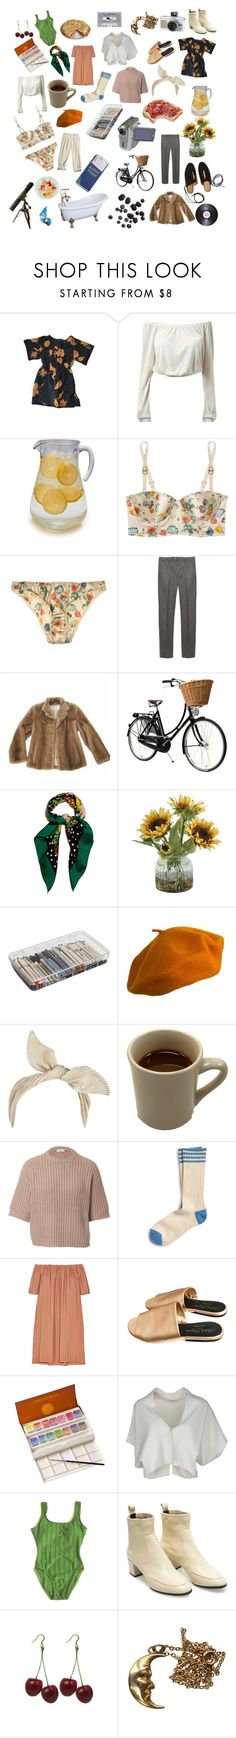 """""""Untitled #1"""" by chloedontsurf ❤ liked on Polyvore featuring Sur La Table, STELLA McCARTNEY, BOSS Black, Pologeorgis, Rosetta Getty, Dolce&Gabbana, Home Decorators Collection, ArtBin, Burberry and River Island"""